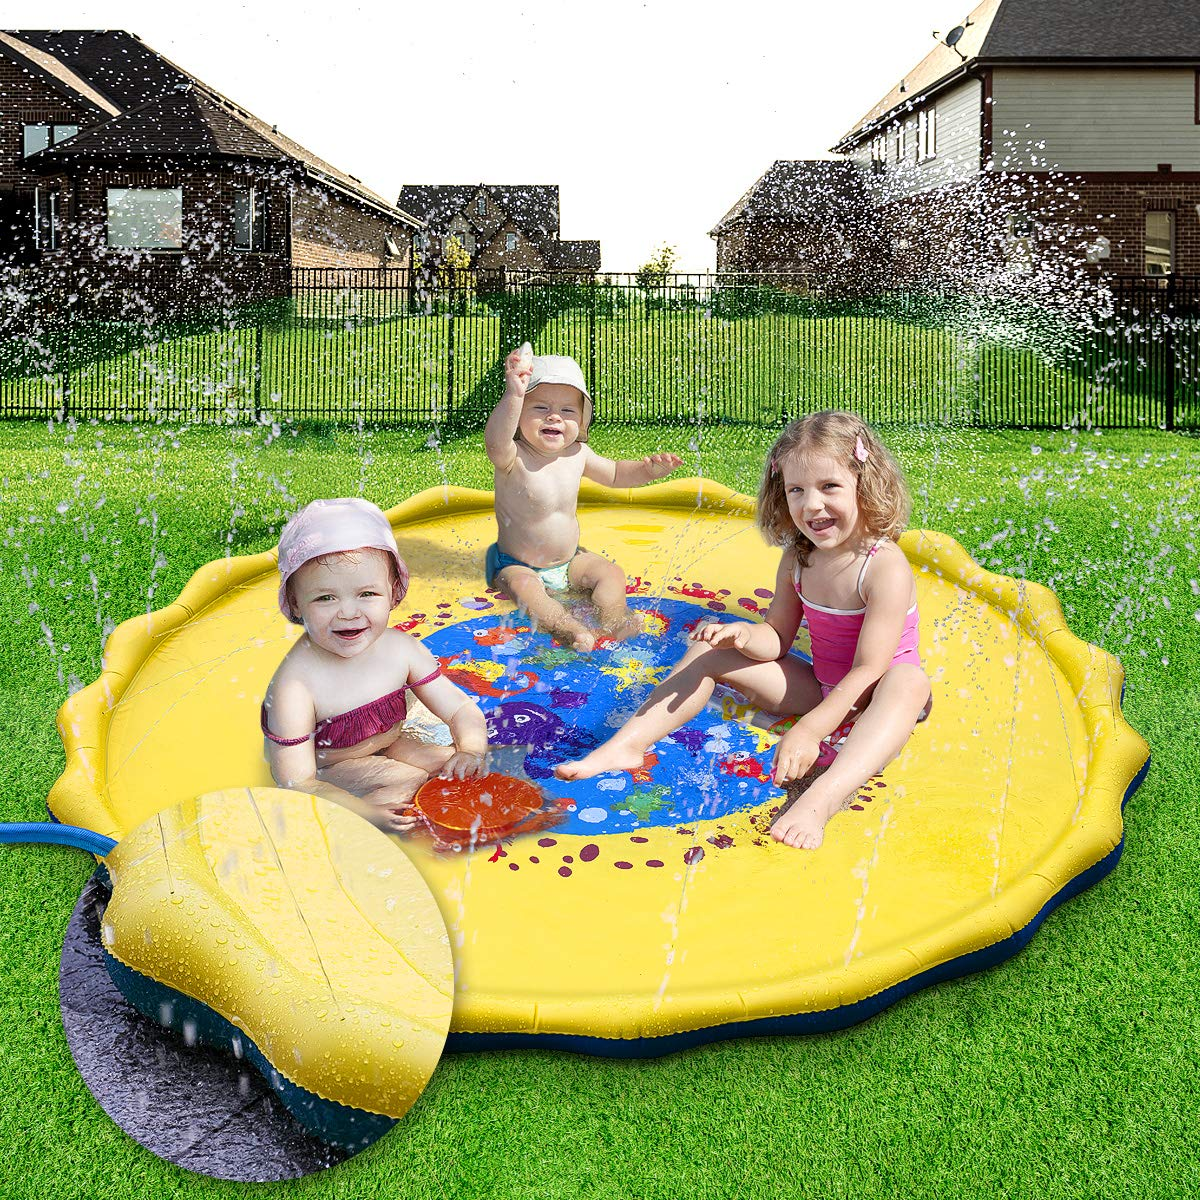 Splash Play Mat, 68in-Diameter Perfect Inflatable Outdoor Sprinkler Pad Summer Fun Backyard Play for Infants Toddlers and Kids by DAPRIL (Image #7)